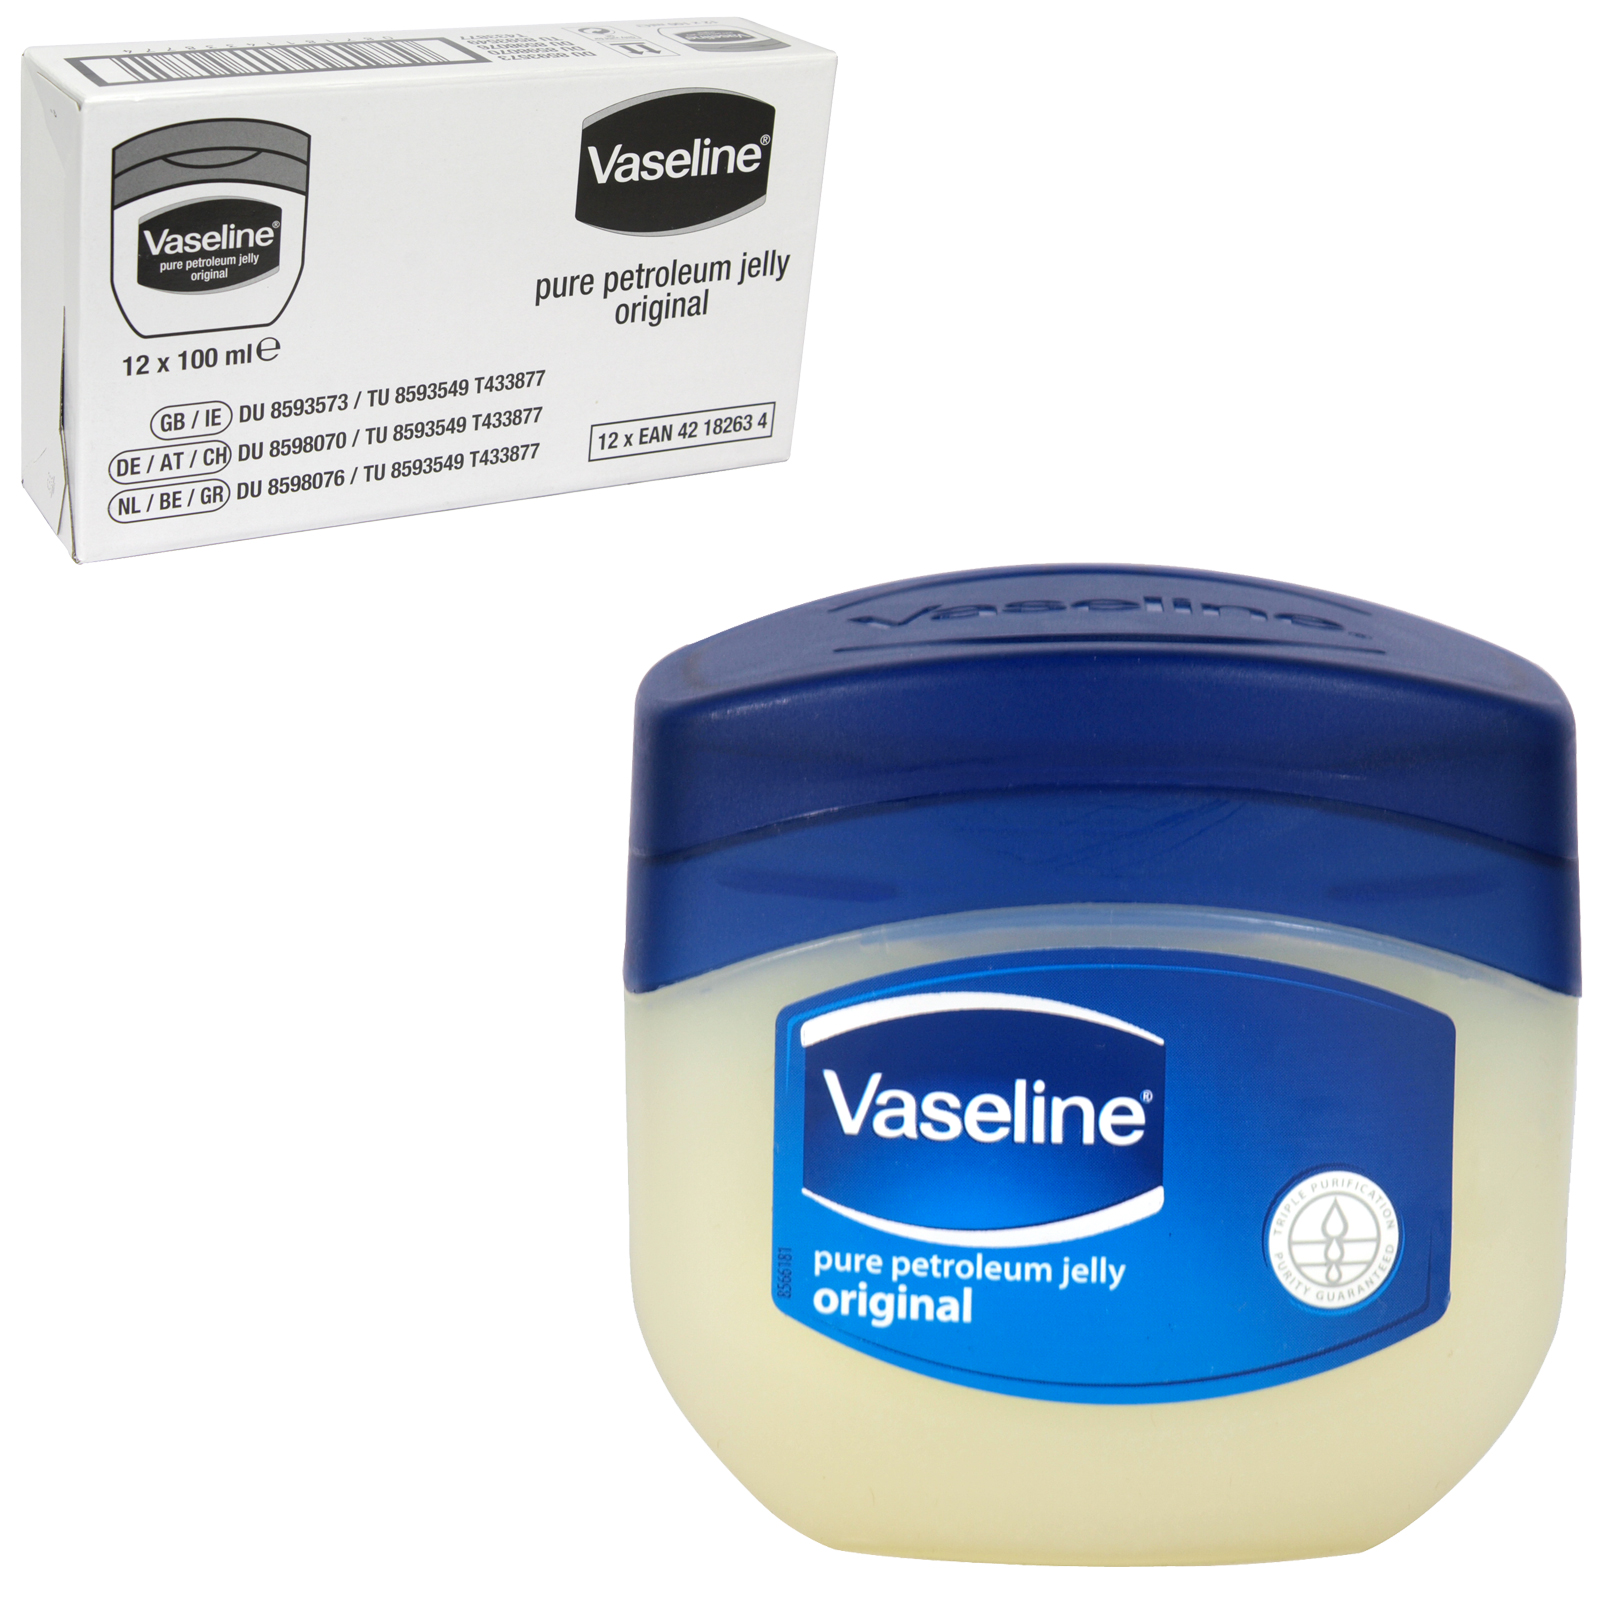 VASELINE PURE PET JELLY 100ML [UK] X12